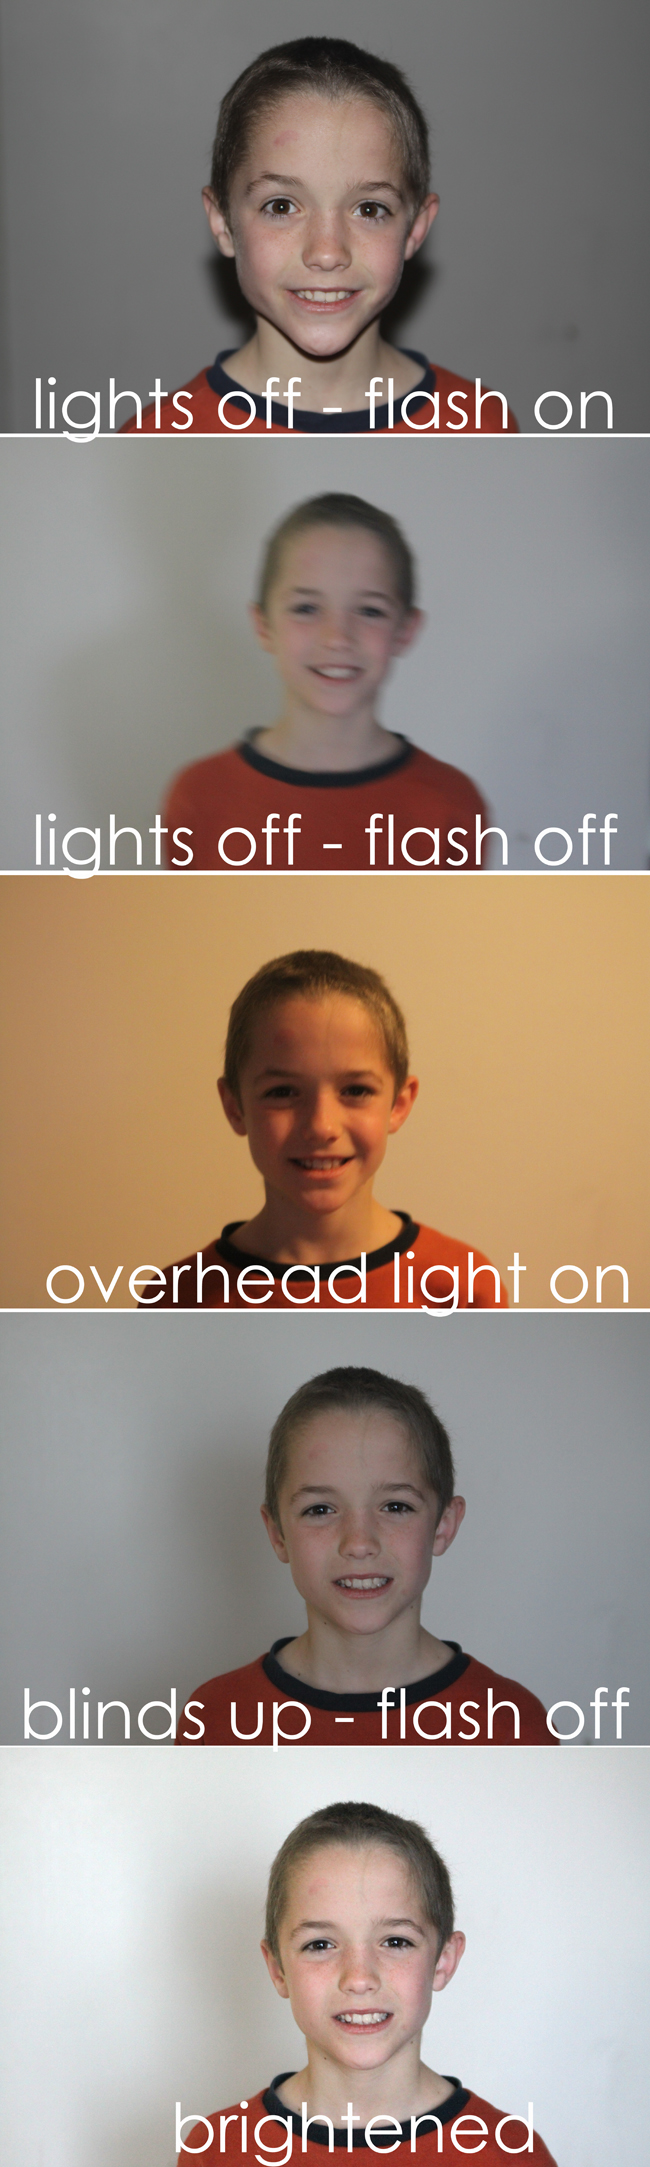 comparison photos of different lighting conditions